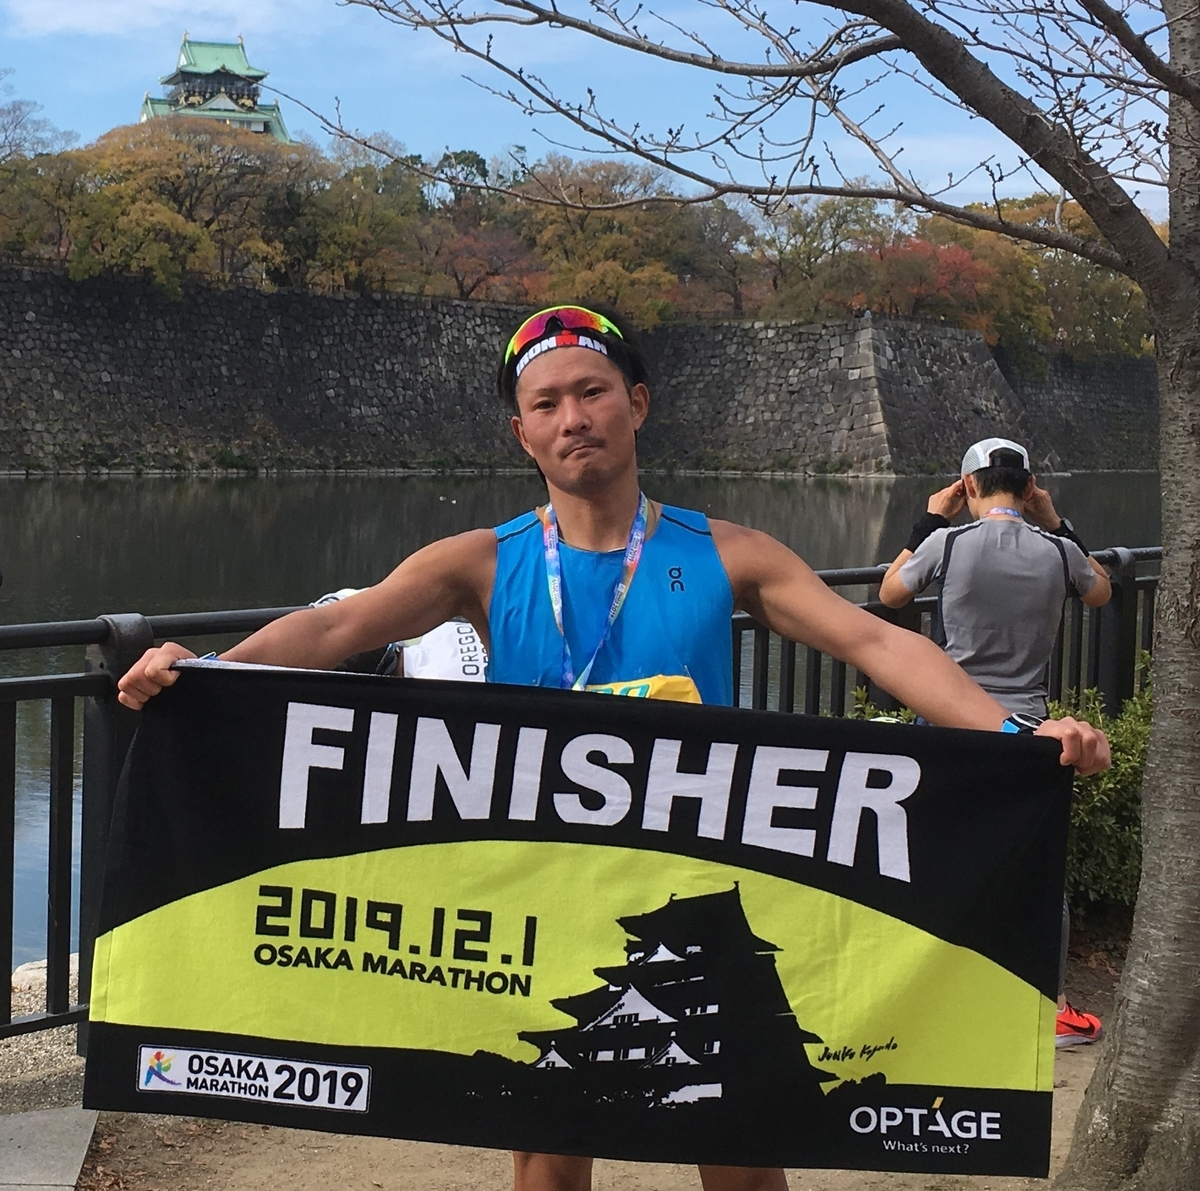 f:id:triathlon_runbikeswim:20191202120501j:plain